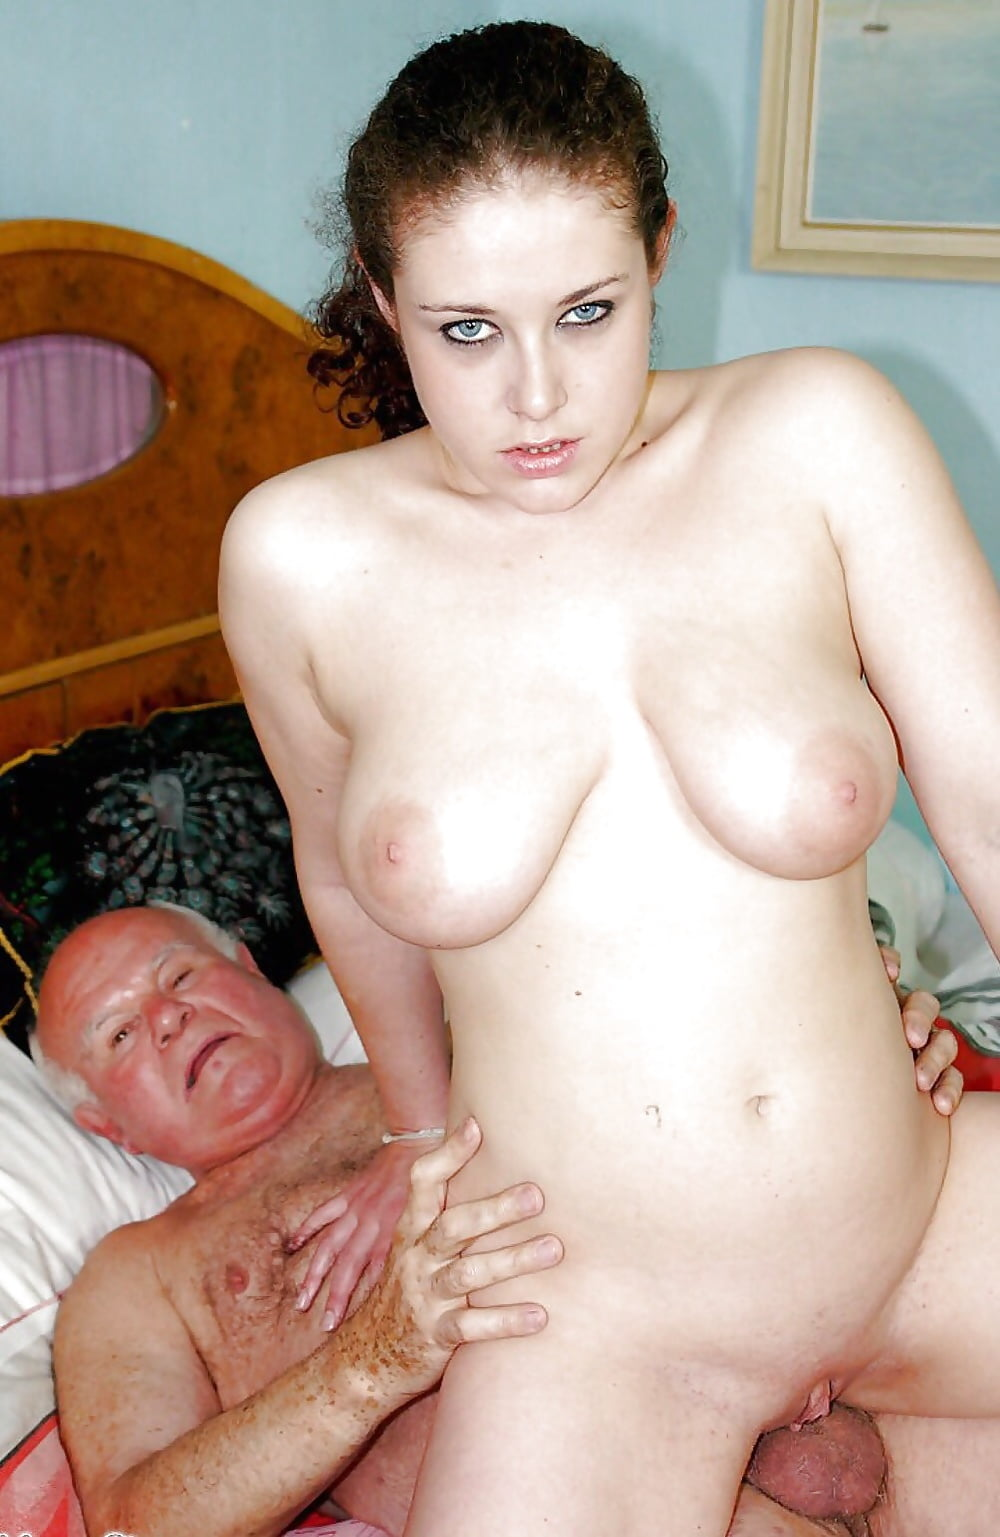 Older busty woman and young girls swap